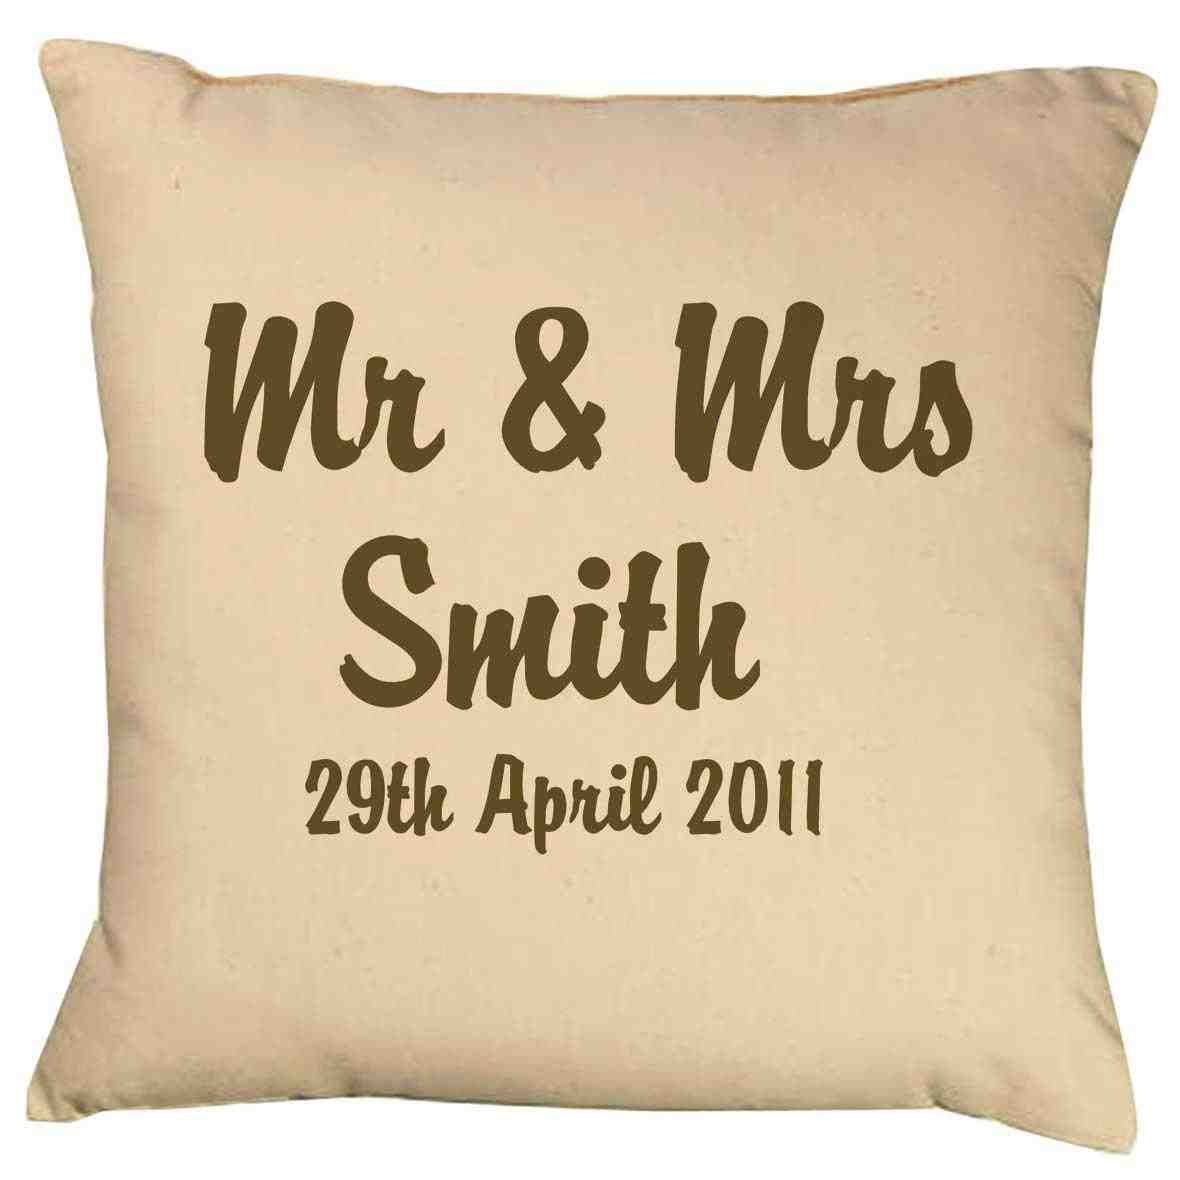 Wedding Gifts For Groom And Bride : Wedding Gifts For Bride And Groom - Wedding and Bridal Inspiration